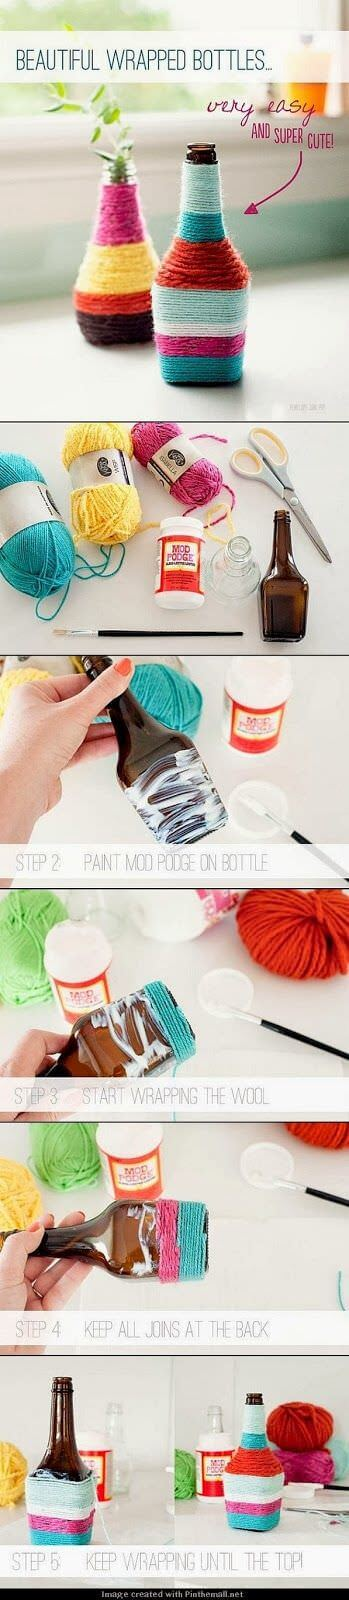 Wrapped Bottle ideas